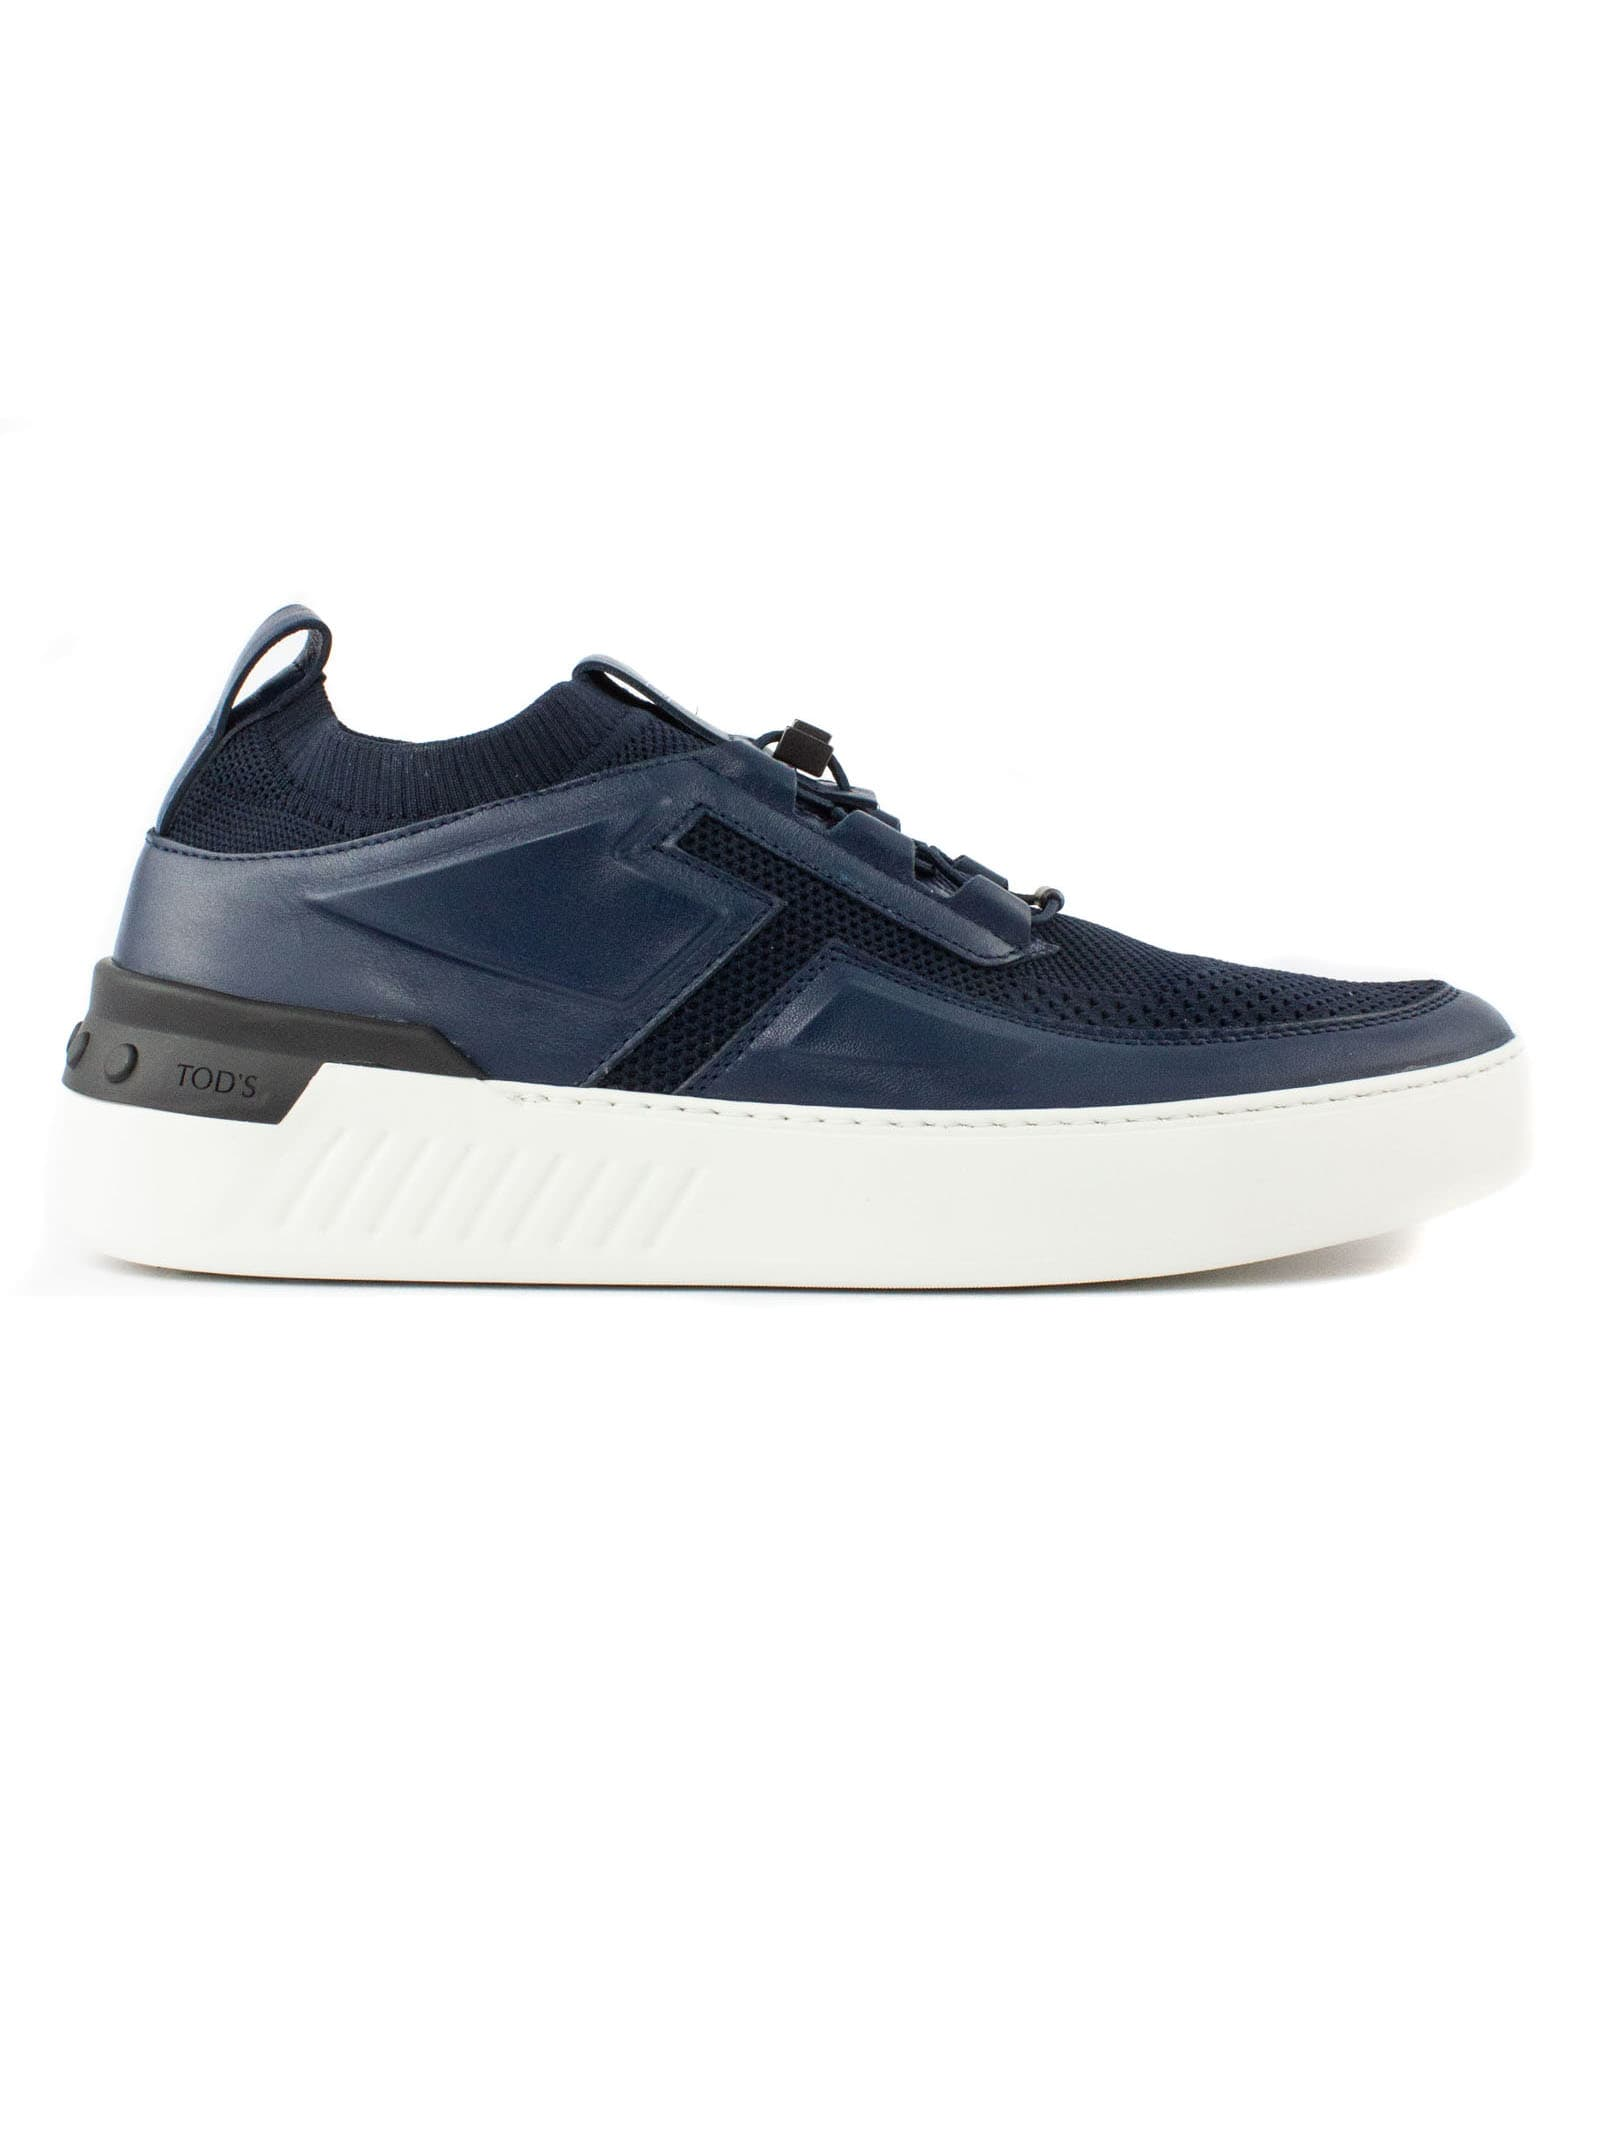 Tod's Leathers BLUE LEATHER NO CODE X SNEAKERS